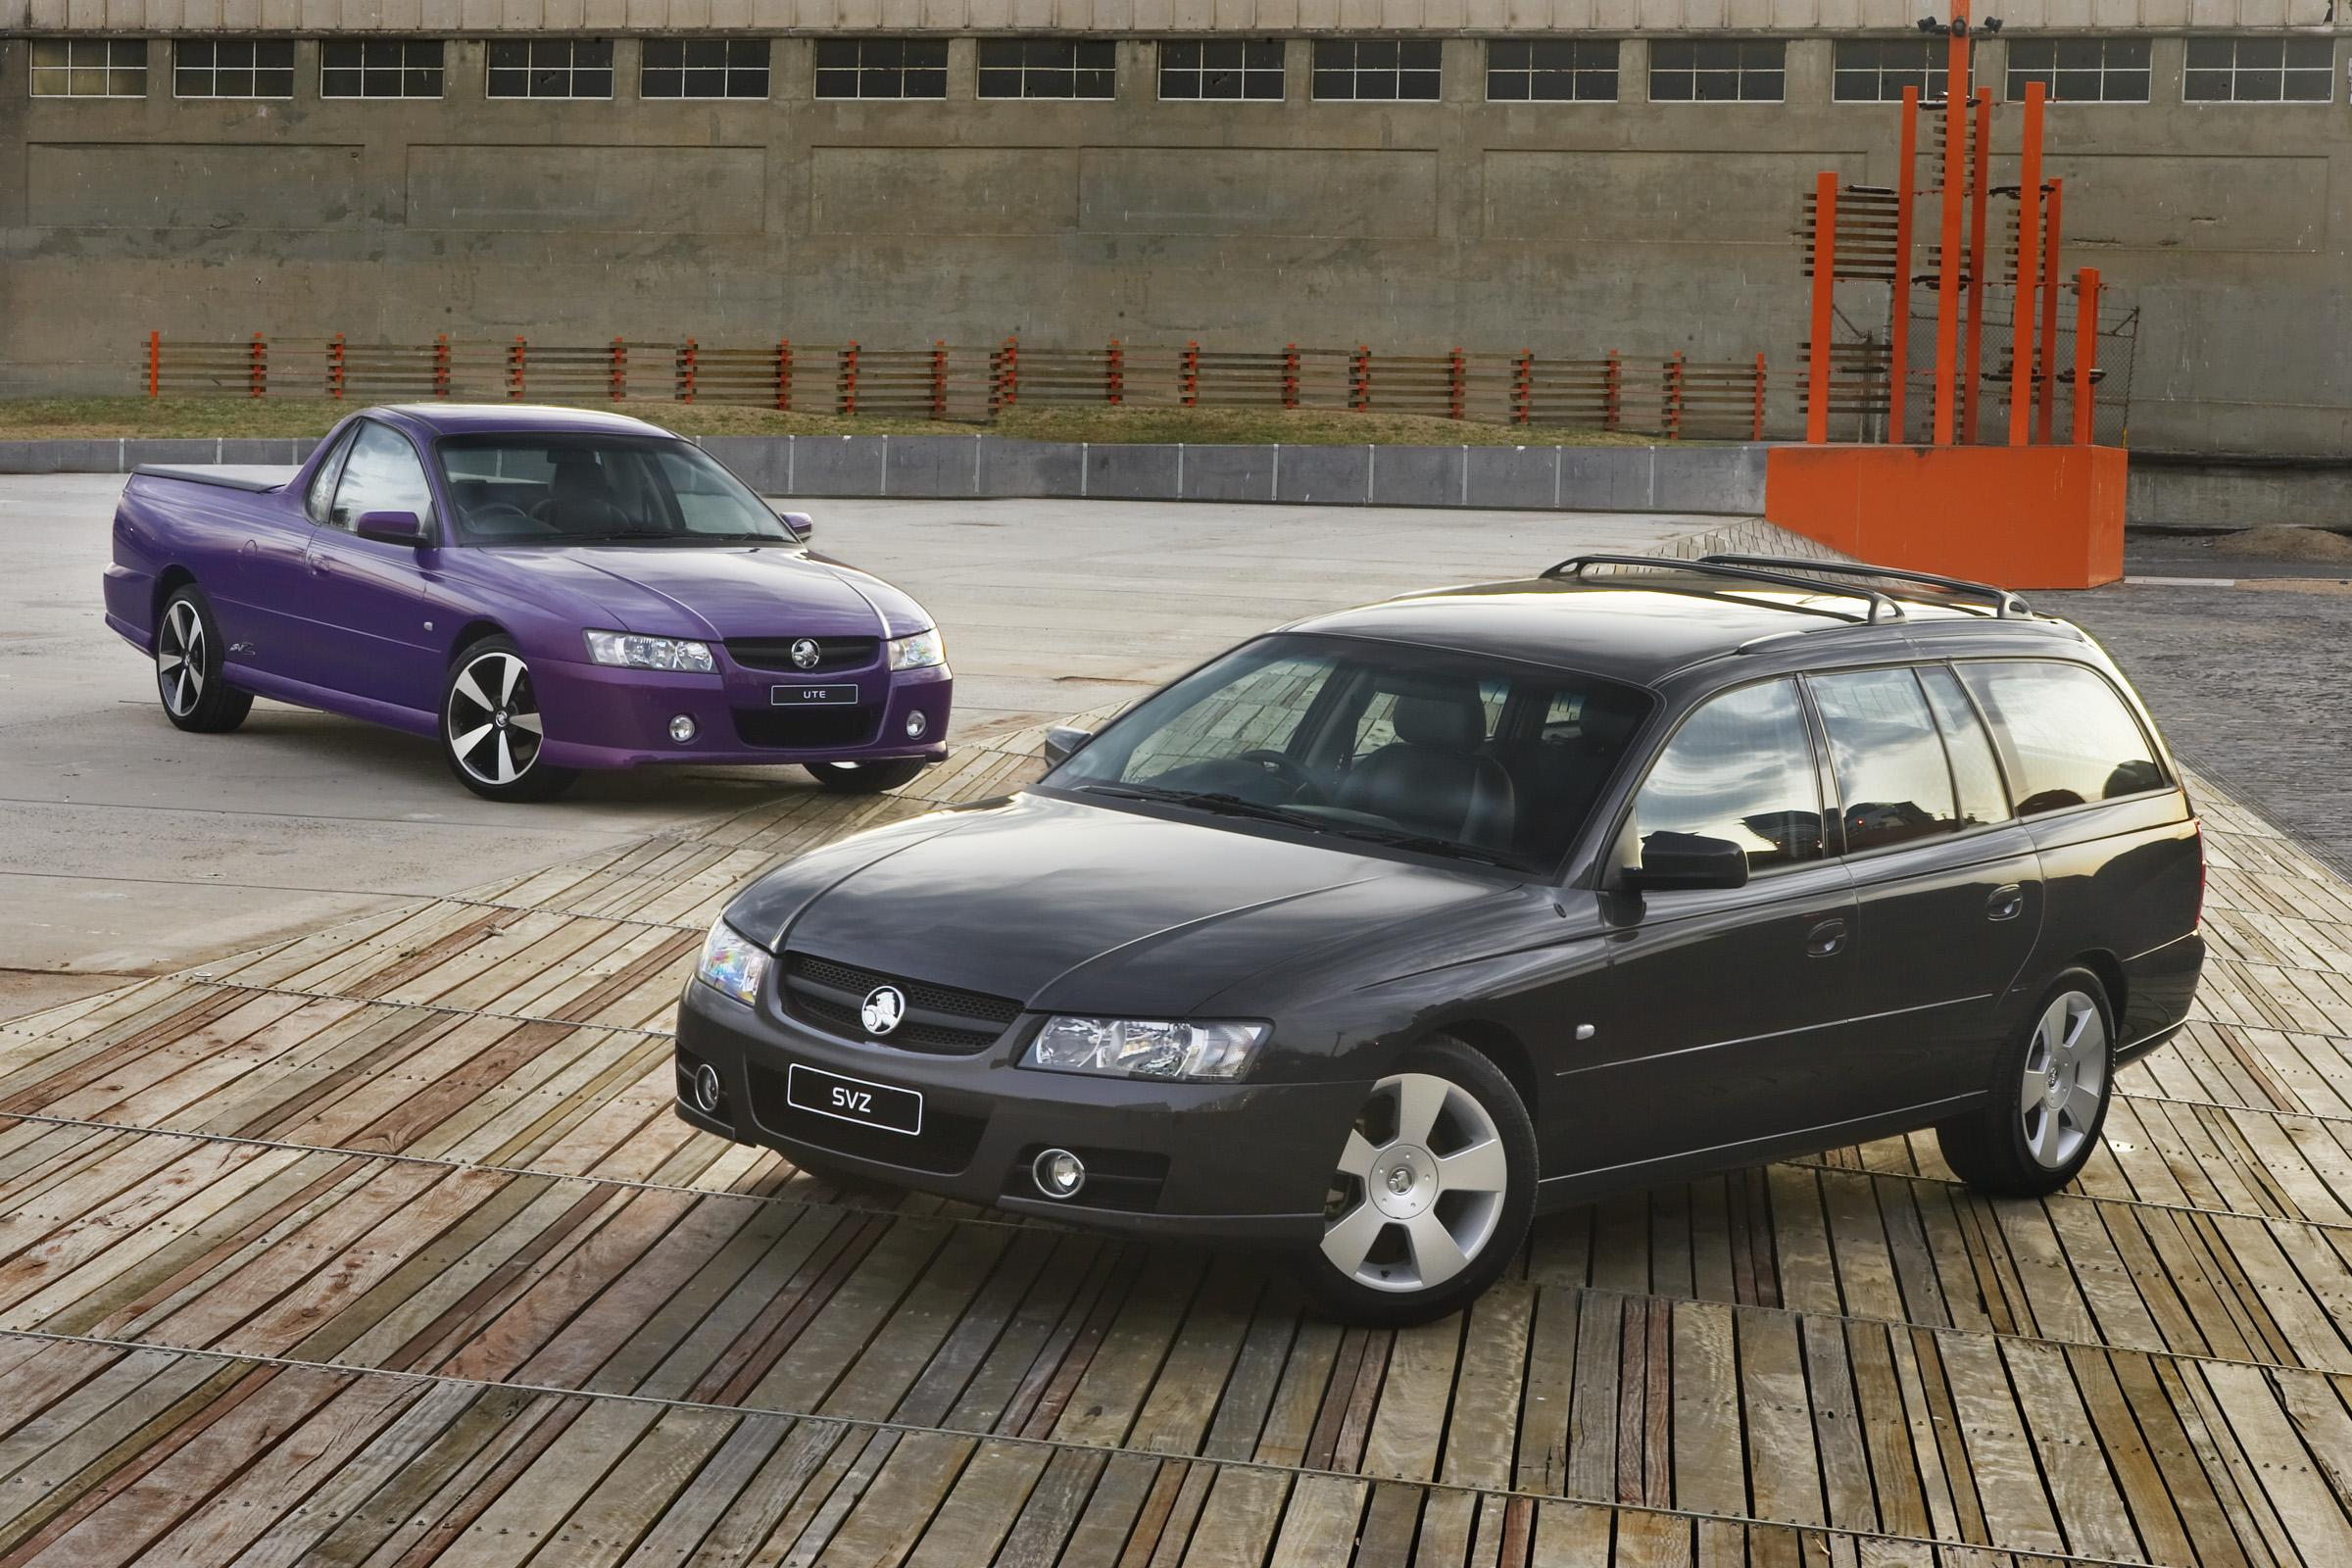 2007 Holden Commodore SVZ Ute And Wagon | Top Speed